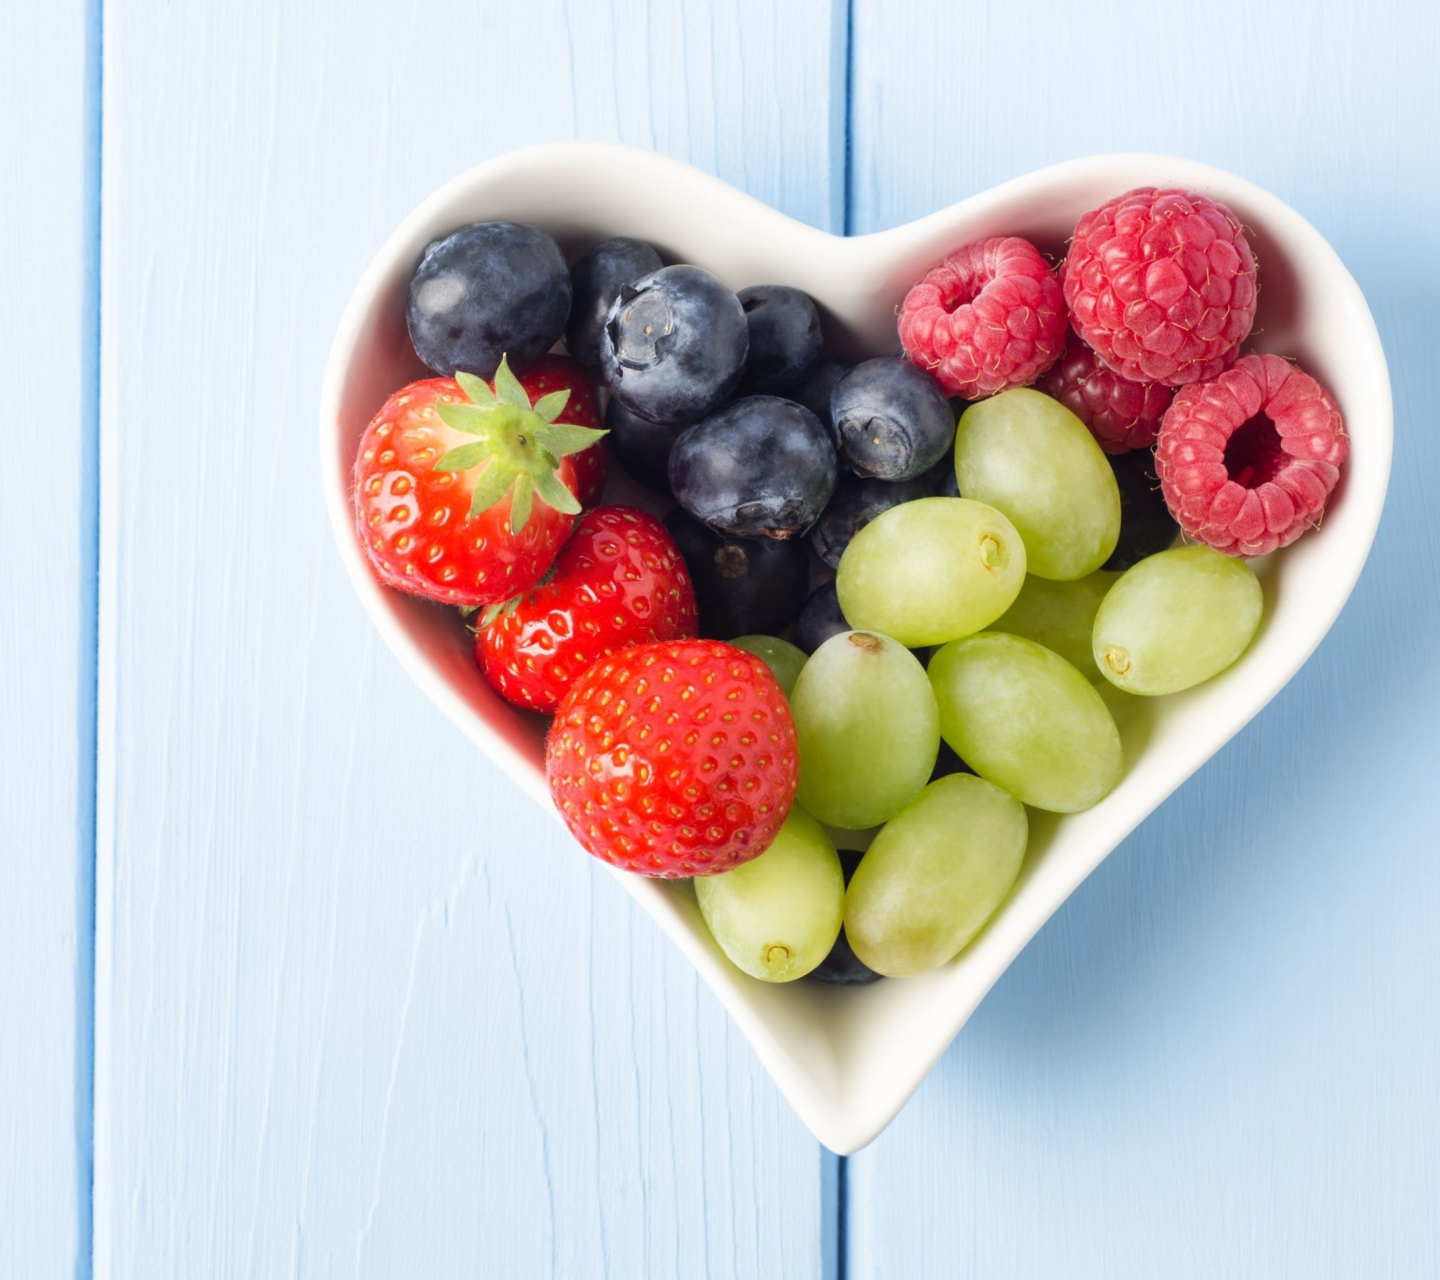 love and fruits Love fruits.